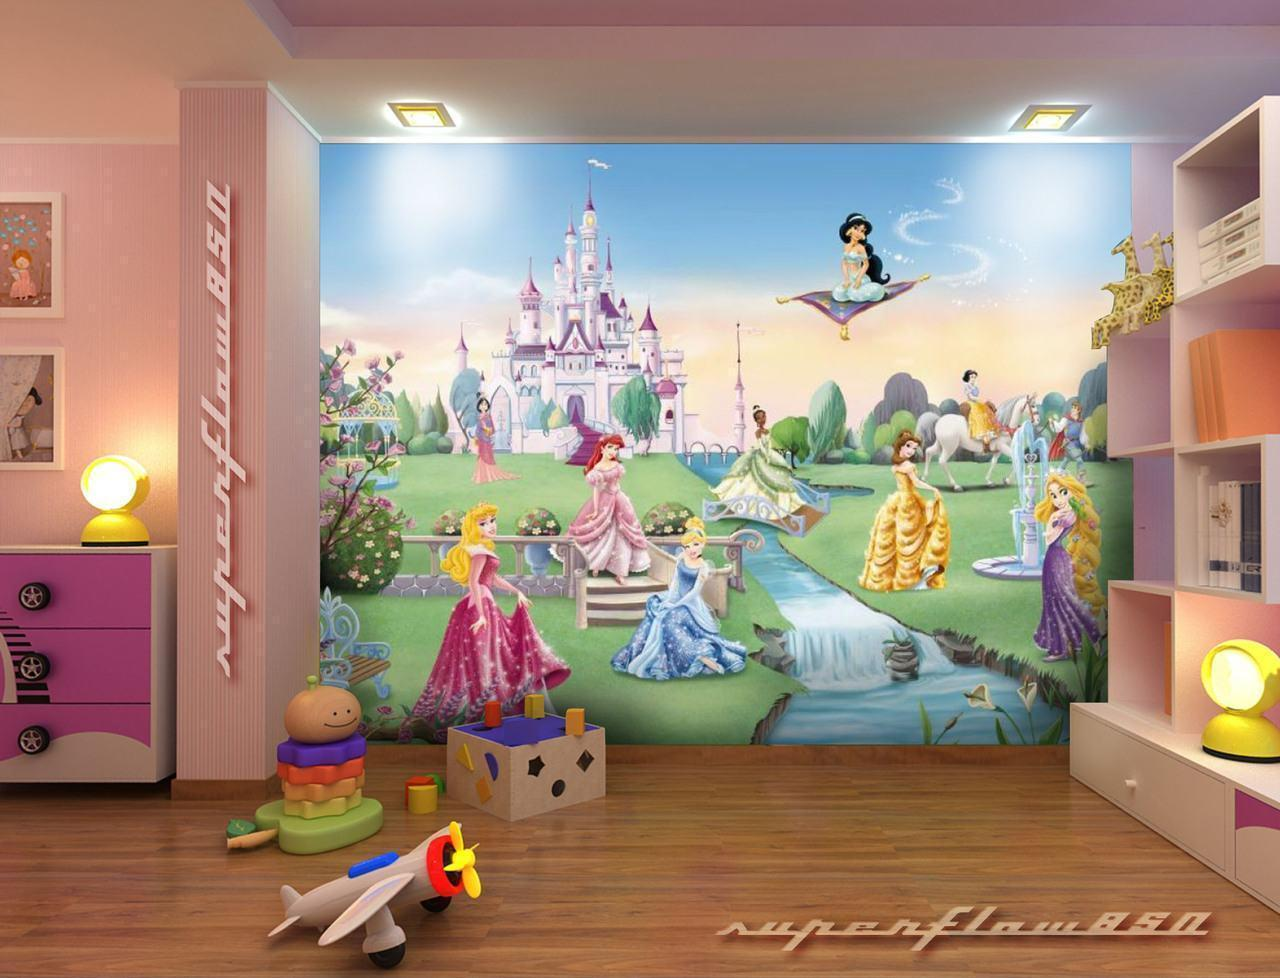 Disney castle backgrounds wallpaper cave Wallpaper for childrens room